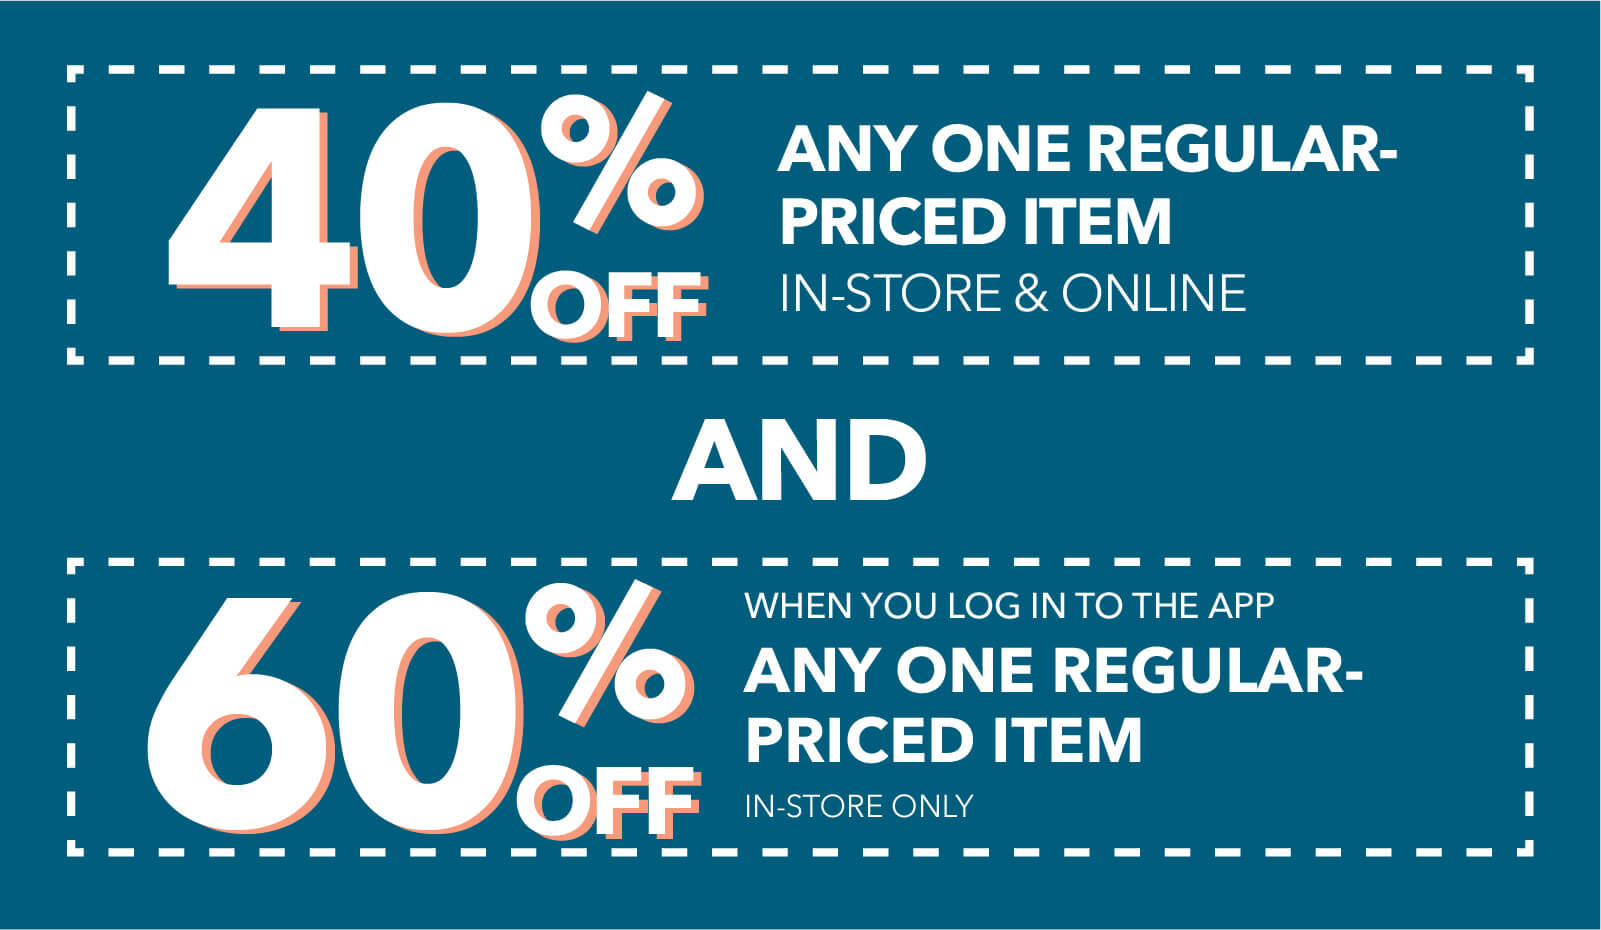 40% off any one regular-priced item.When you log in to the app 60% off an one regular-priced item in-store & online when you buy online pick up in store.